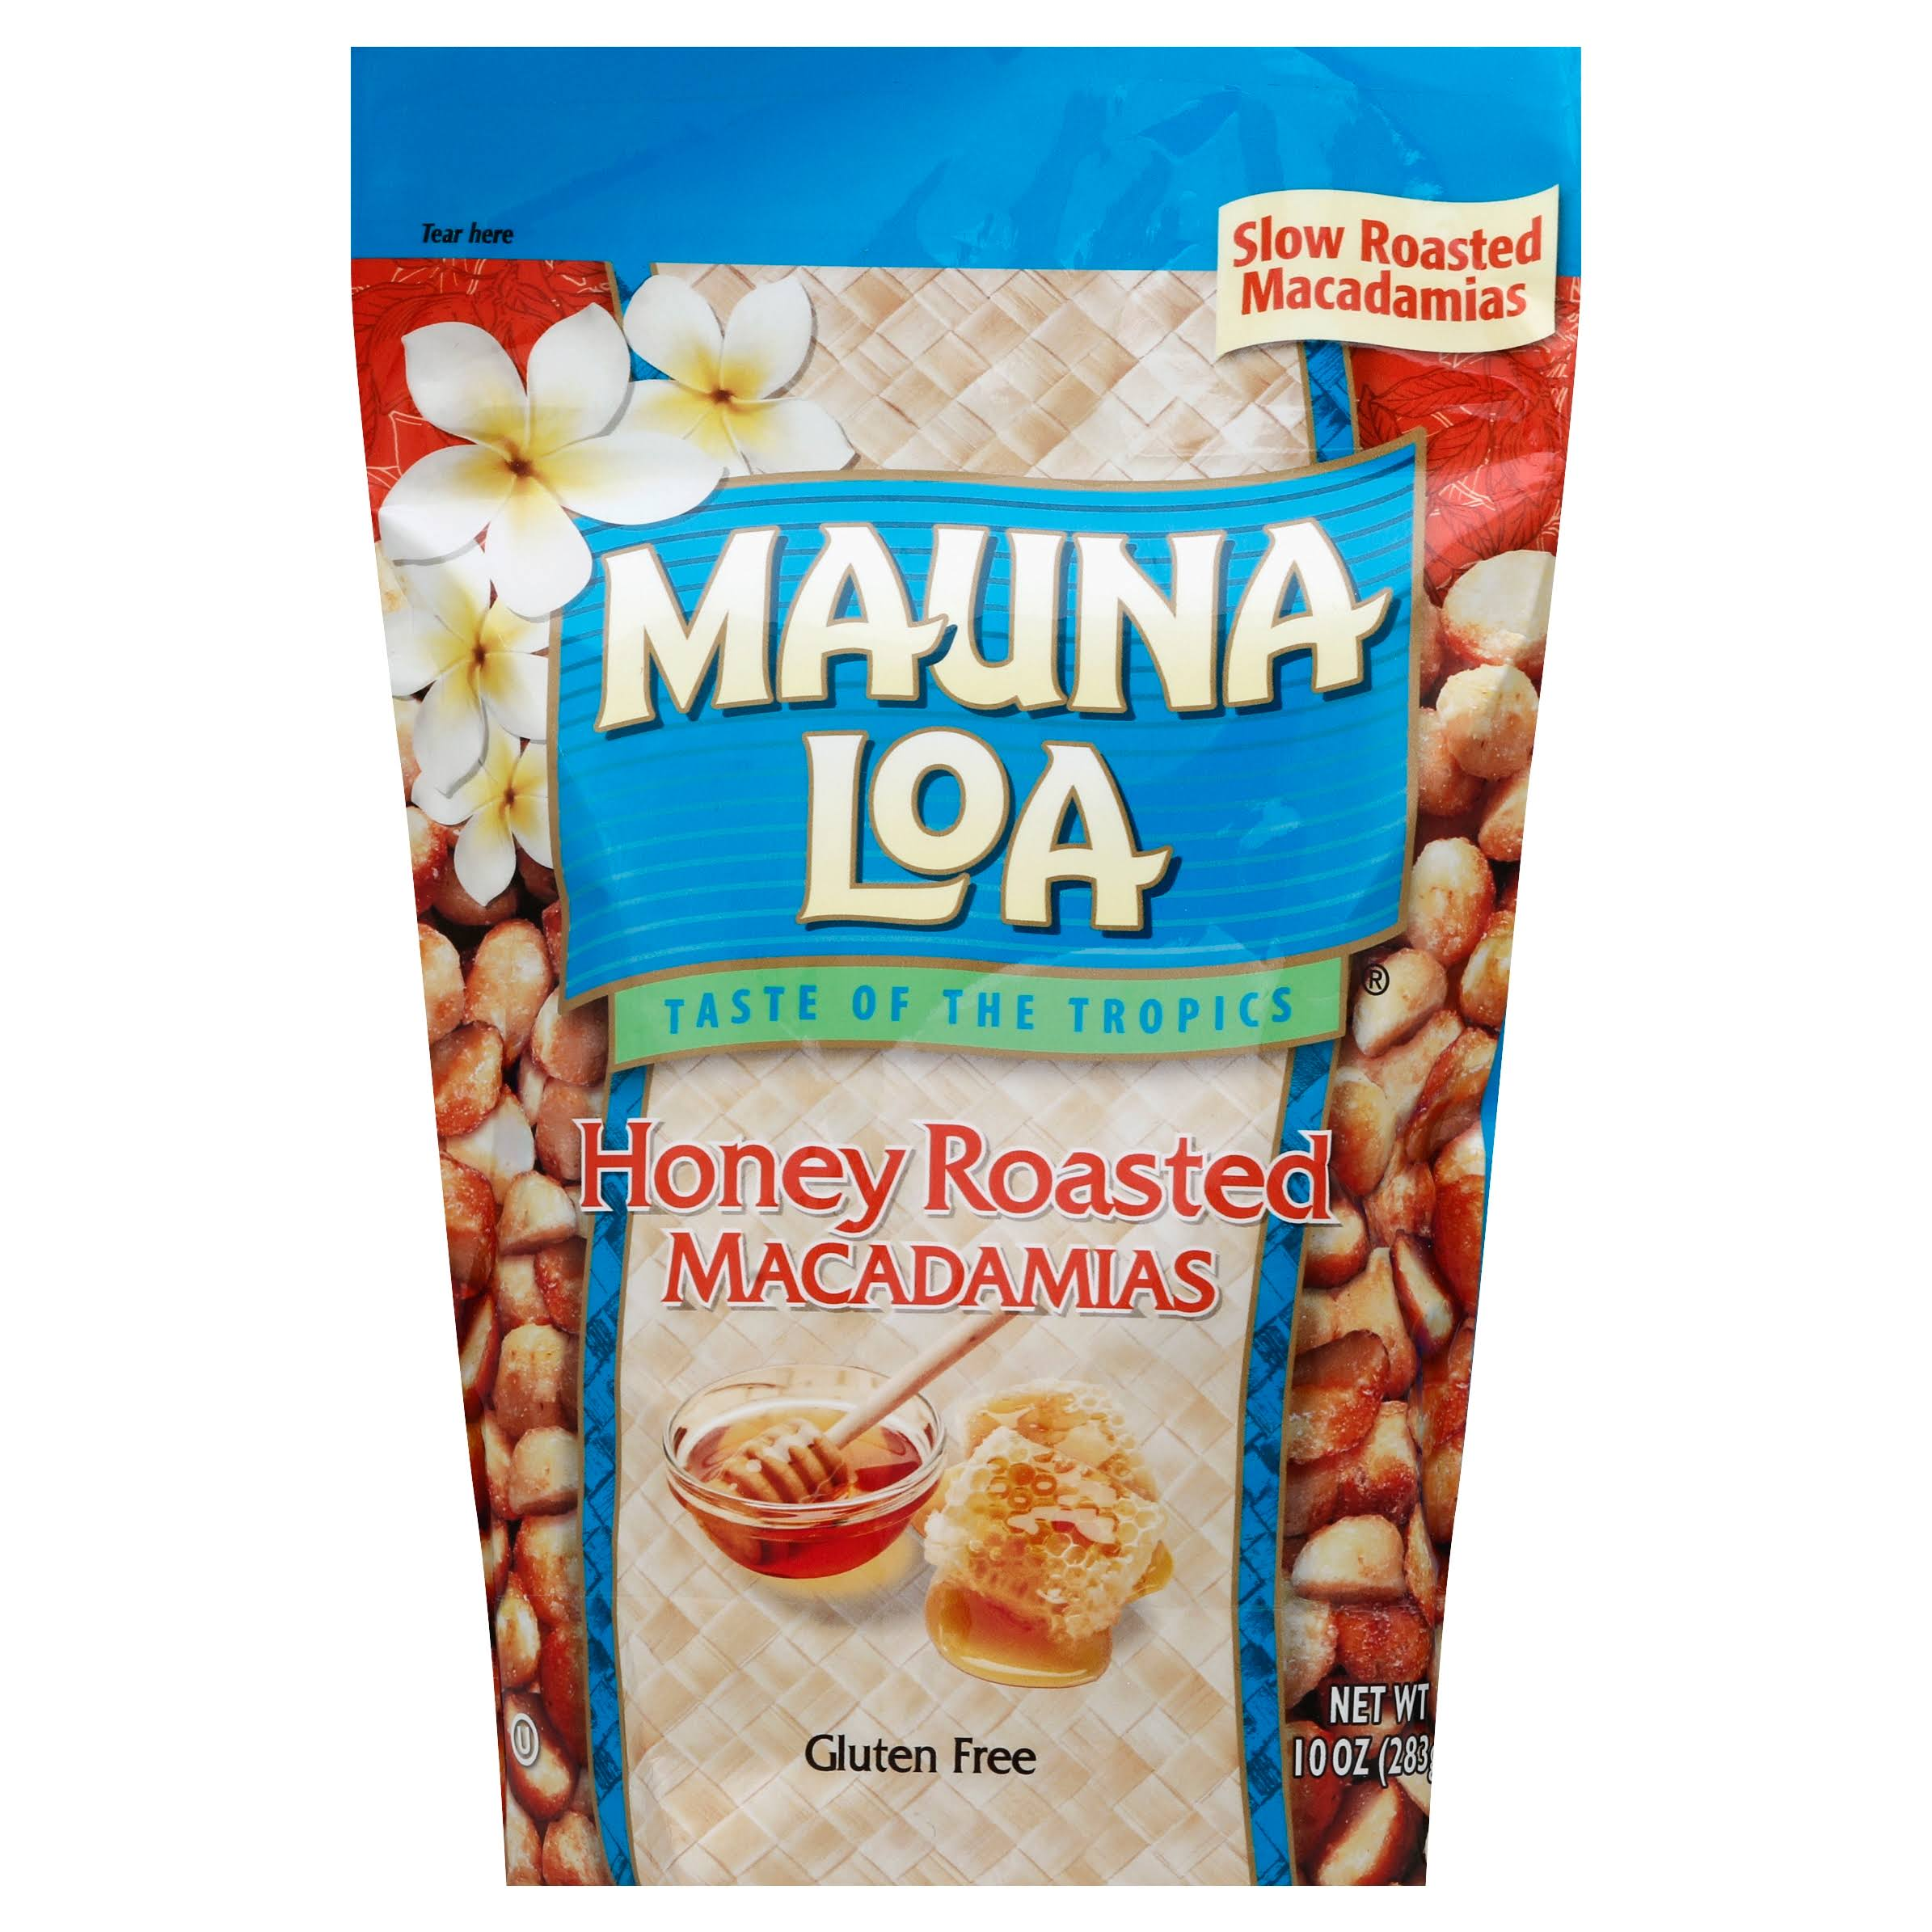 Hawaii Mauna Loa Honey Roasted Macadamia Nuts - 11oz